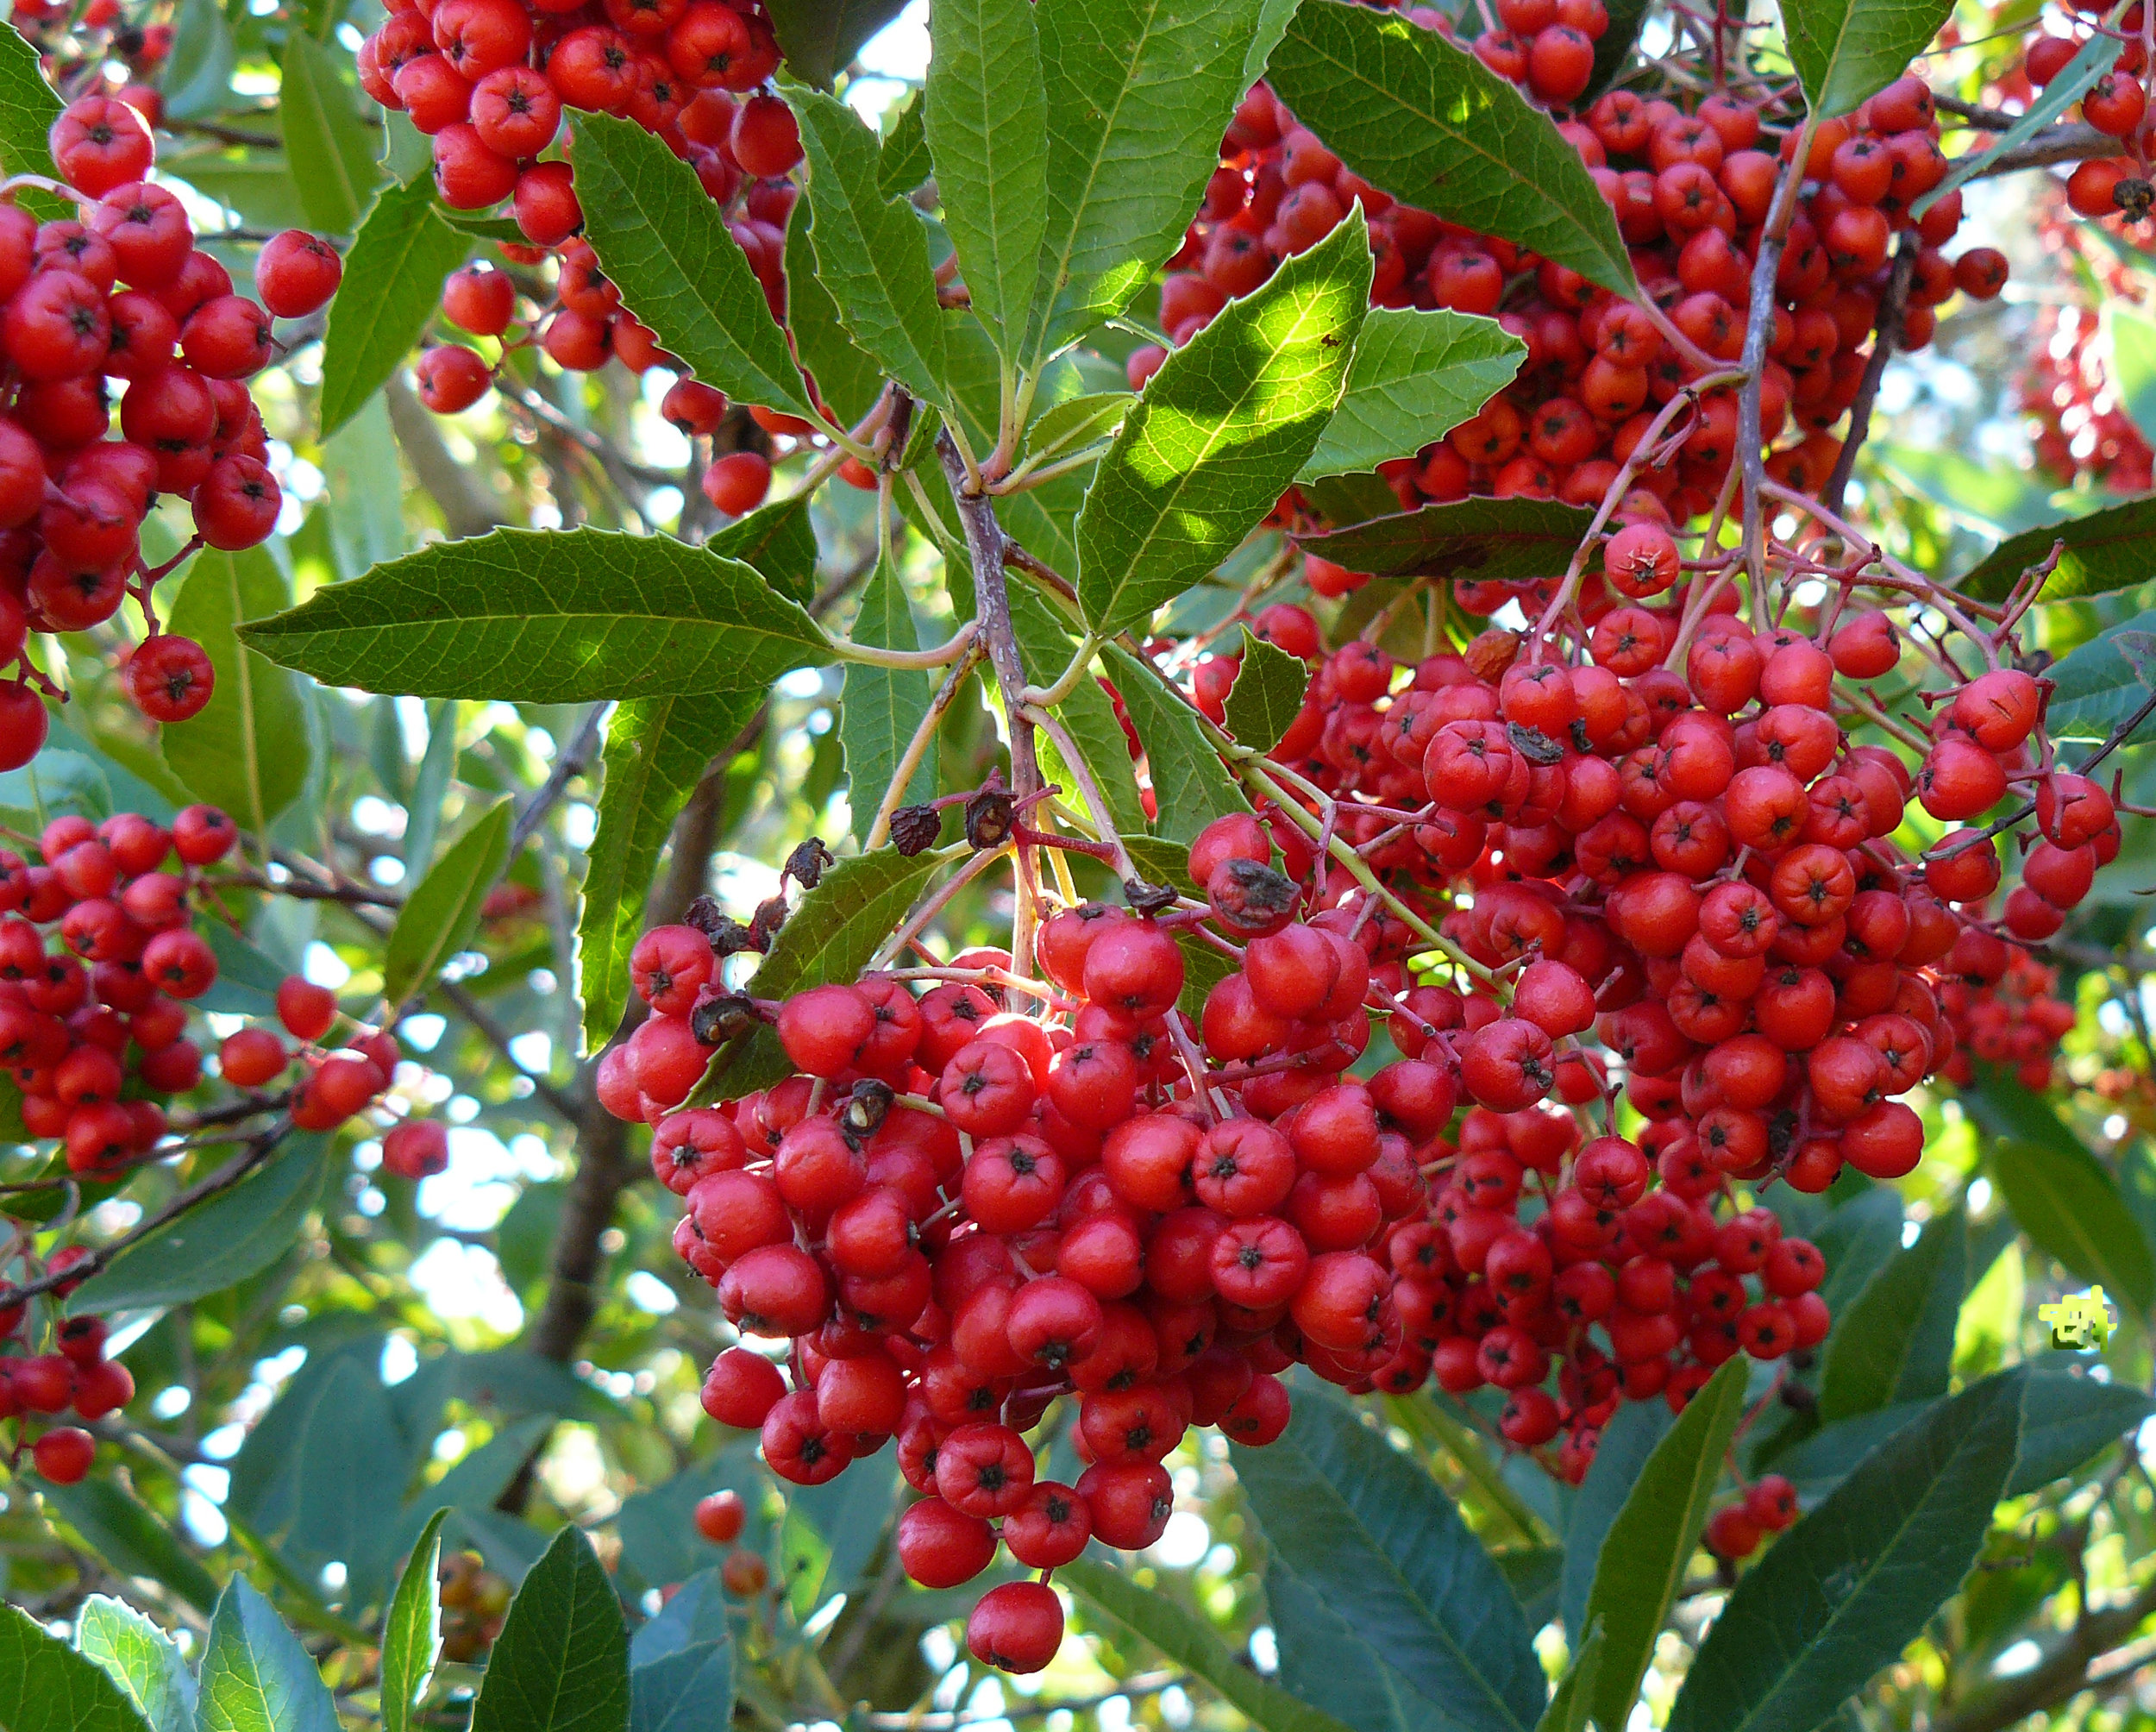 Image of the Toyon tree's berries. The Toyon tree was named the official Los Angeles city native plant in 2012. These beautiful shrubs produce edible berries, attract butterflies, birds, and other wildlife, and play an important role in maintaining natural habitats. When one of these shrubs is removed, the impacts go far beyond aesthetics, often affecting entire ecosystems. Source: Wikipedia and Los Angeles Department of City Planning Staff Report CPC-2016-4520-CA.